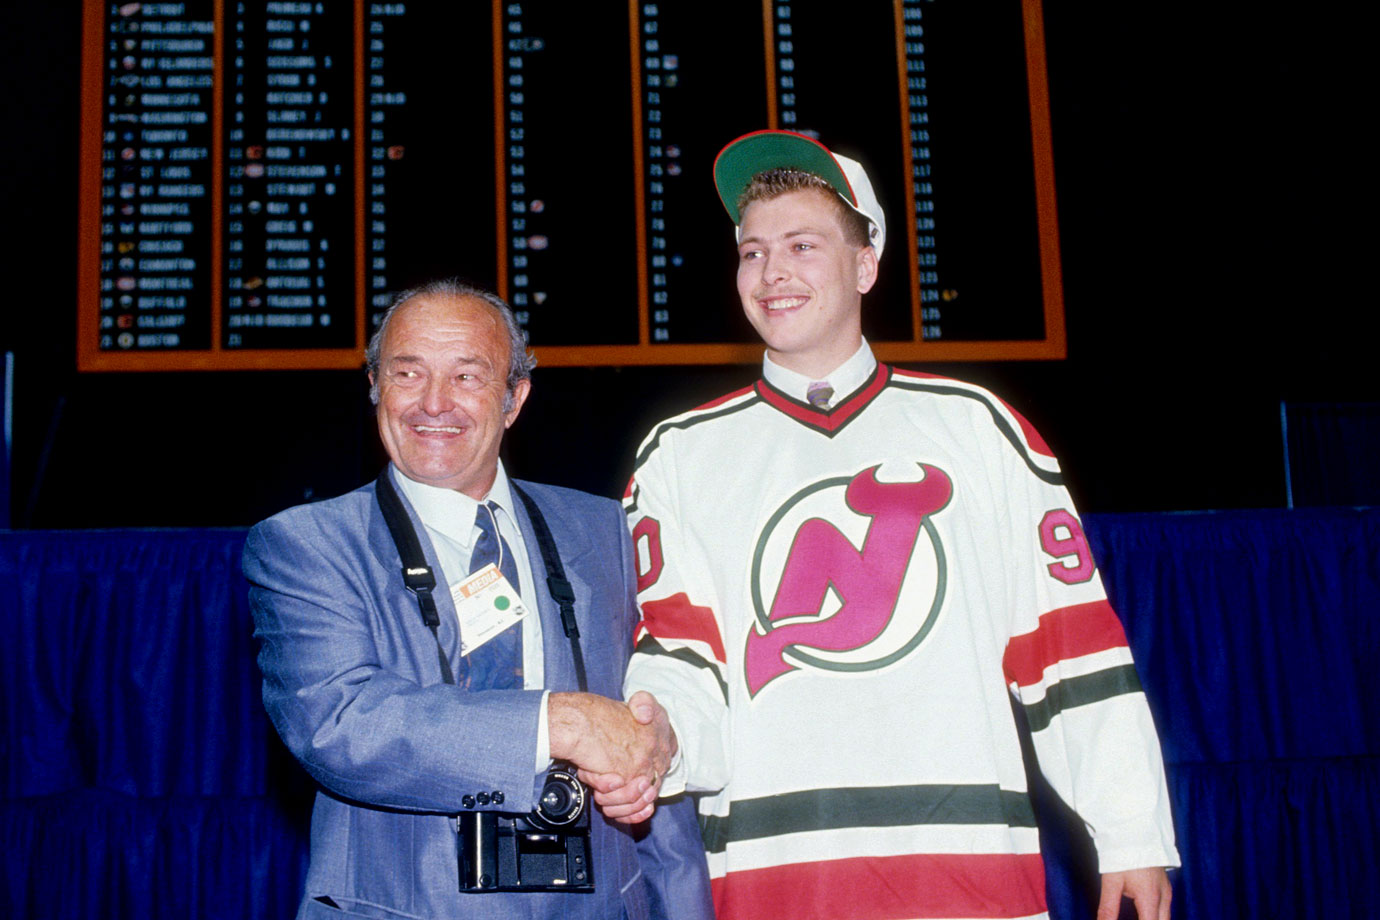 Drafted out of the Quebec Major Junior Hockey League by the Devils with the 20th pick in the 1990 draft, Brodeur made his NHL debut on March 26, 1992, with 24 saves in a 4-2 win over Boston.